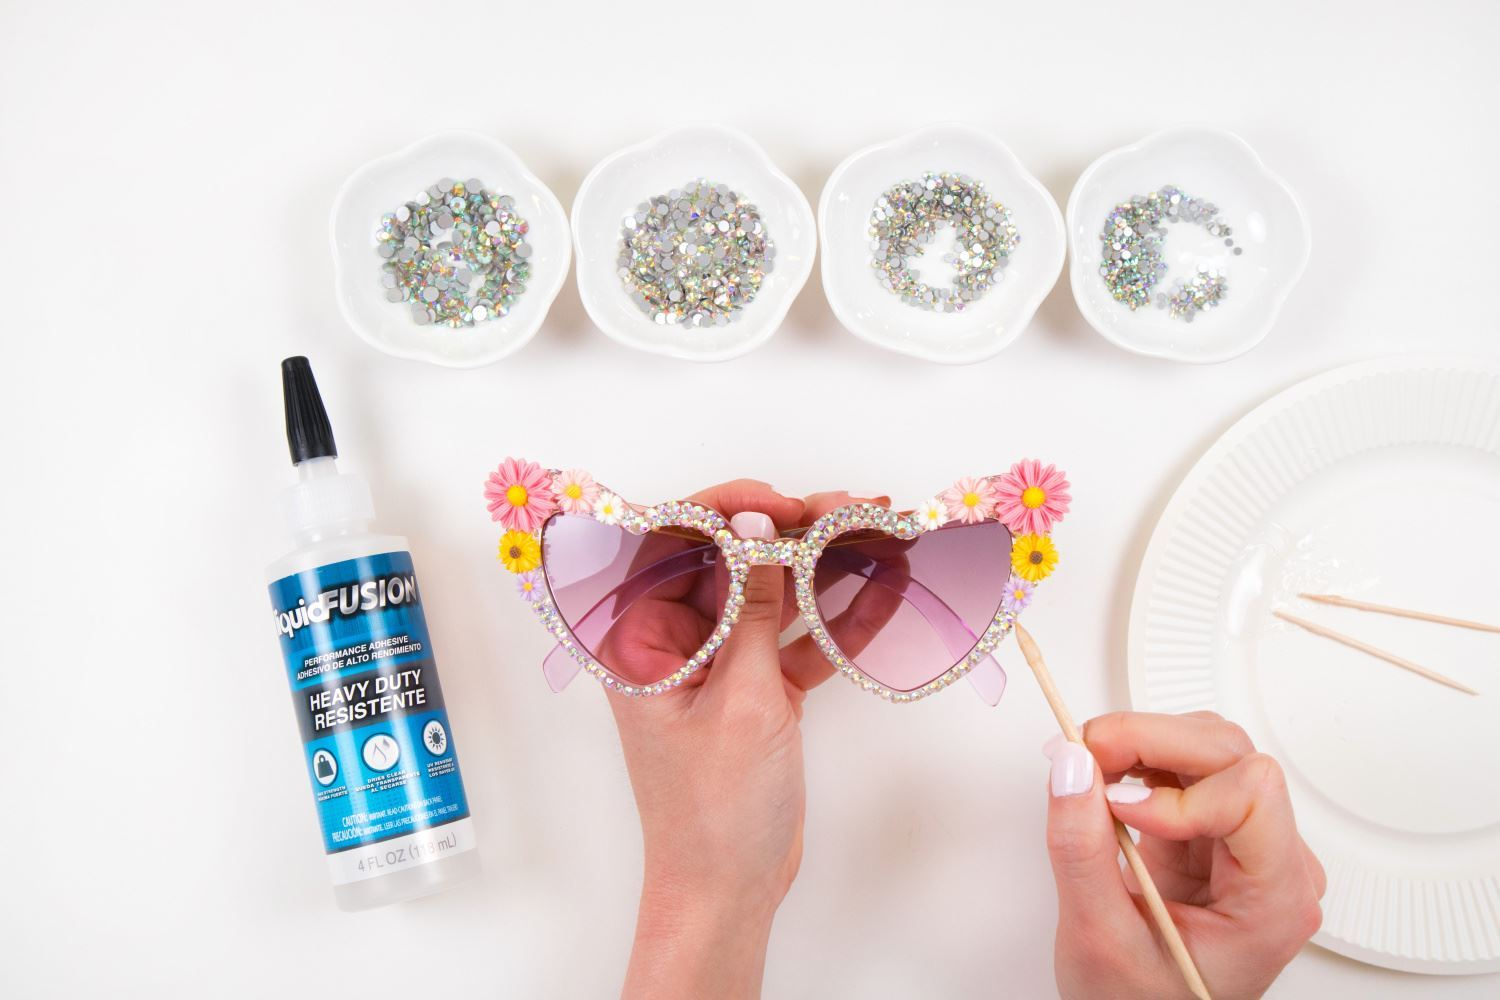 Use waxed skewer to place rhinestones in glue